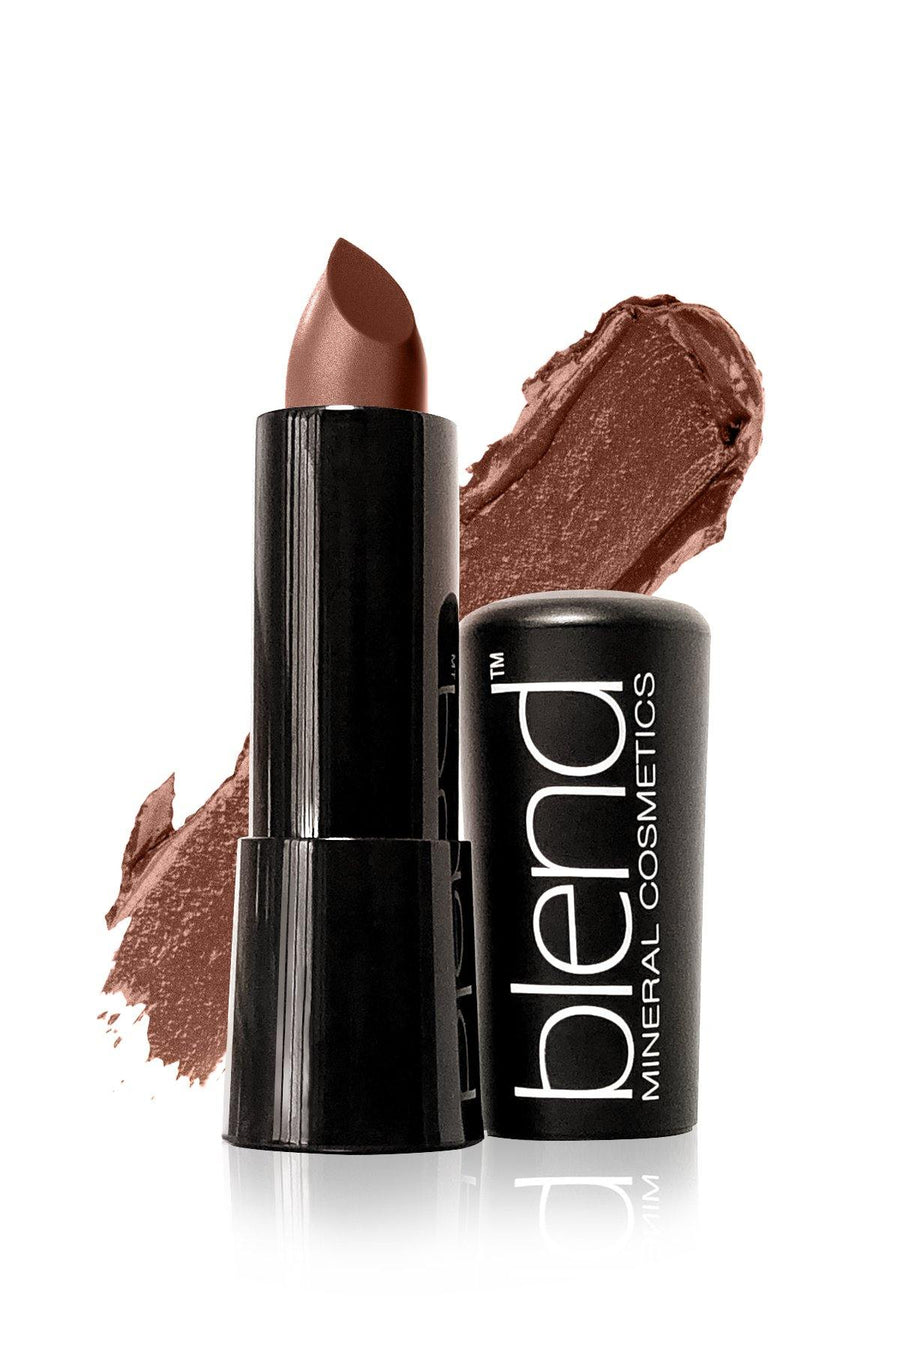 Lipstick #12 - Brown - Blend Mineral Cosmetics